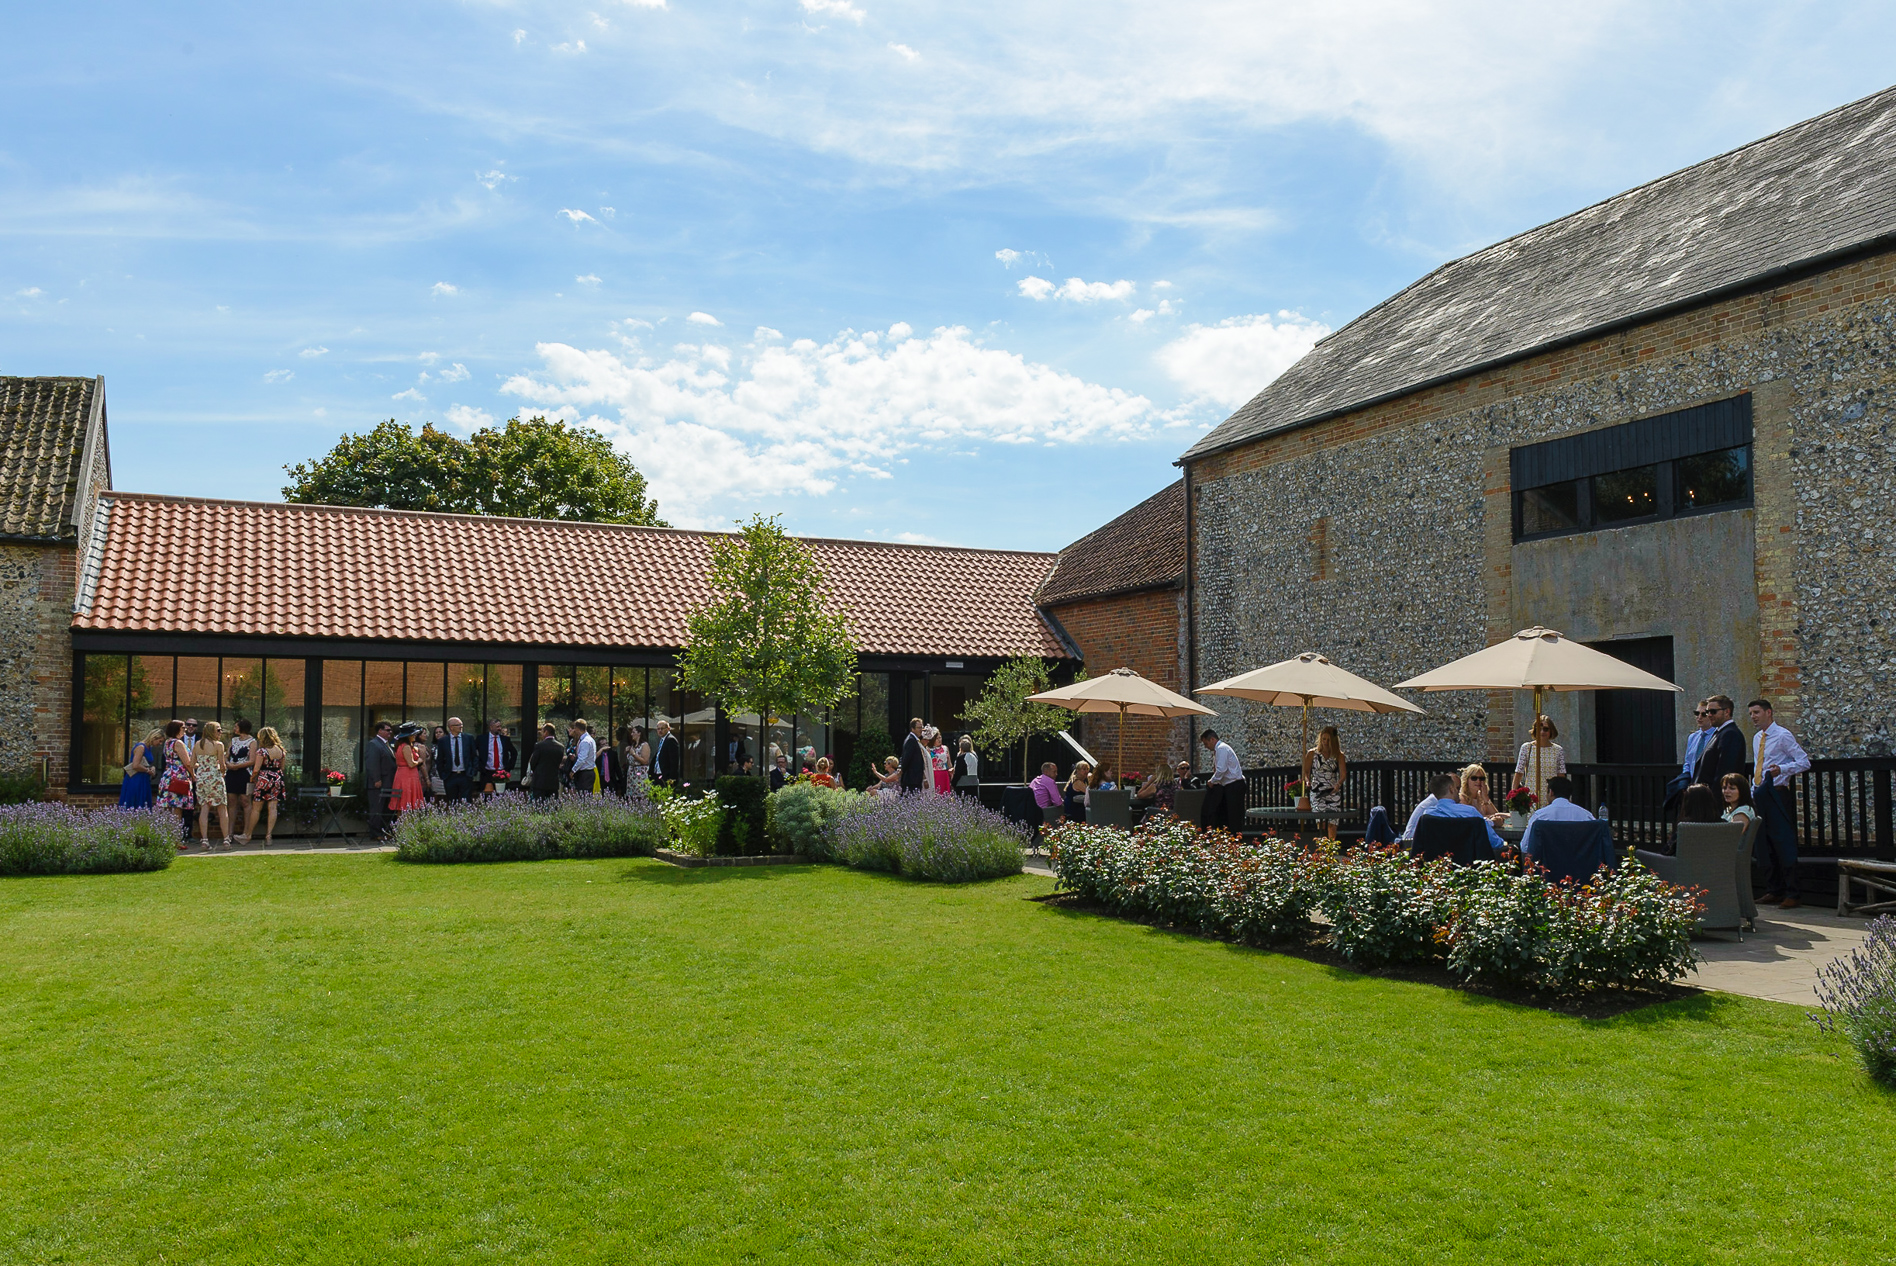 Louise and Tom's Wedding at The Granary Barns, Newmarket, Suffolk